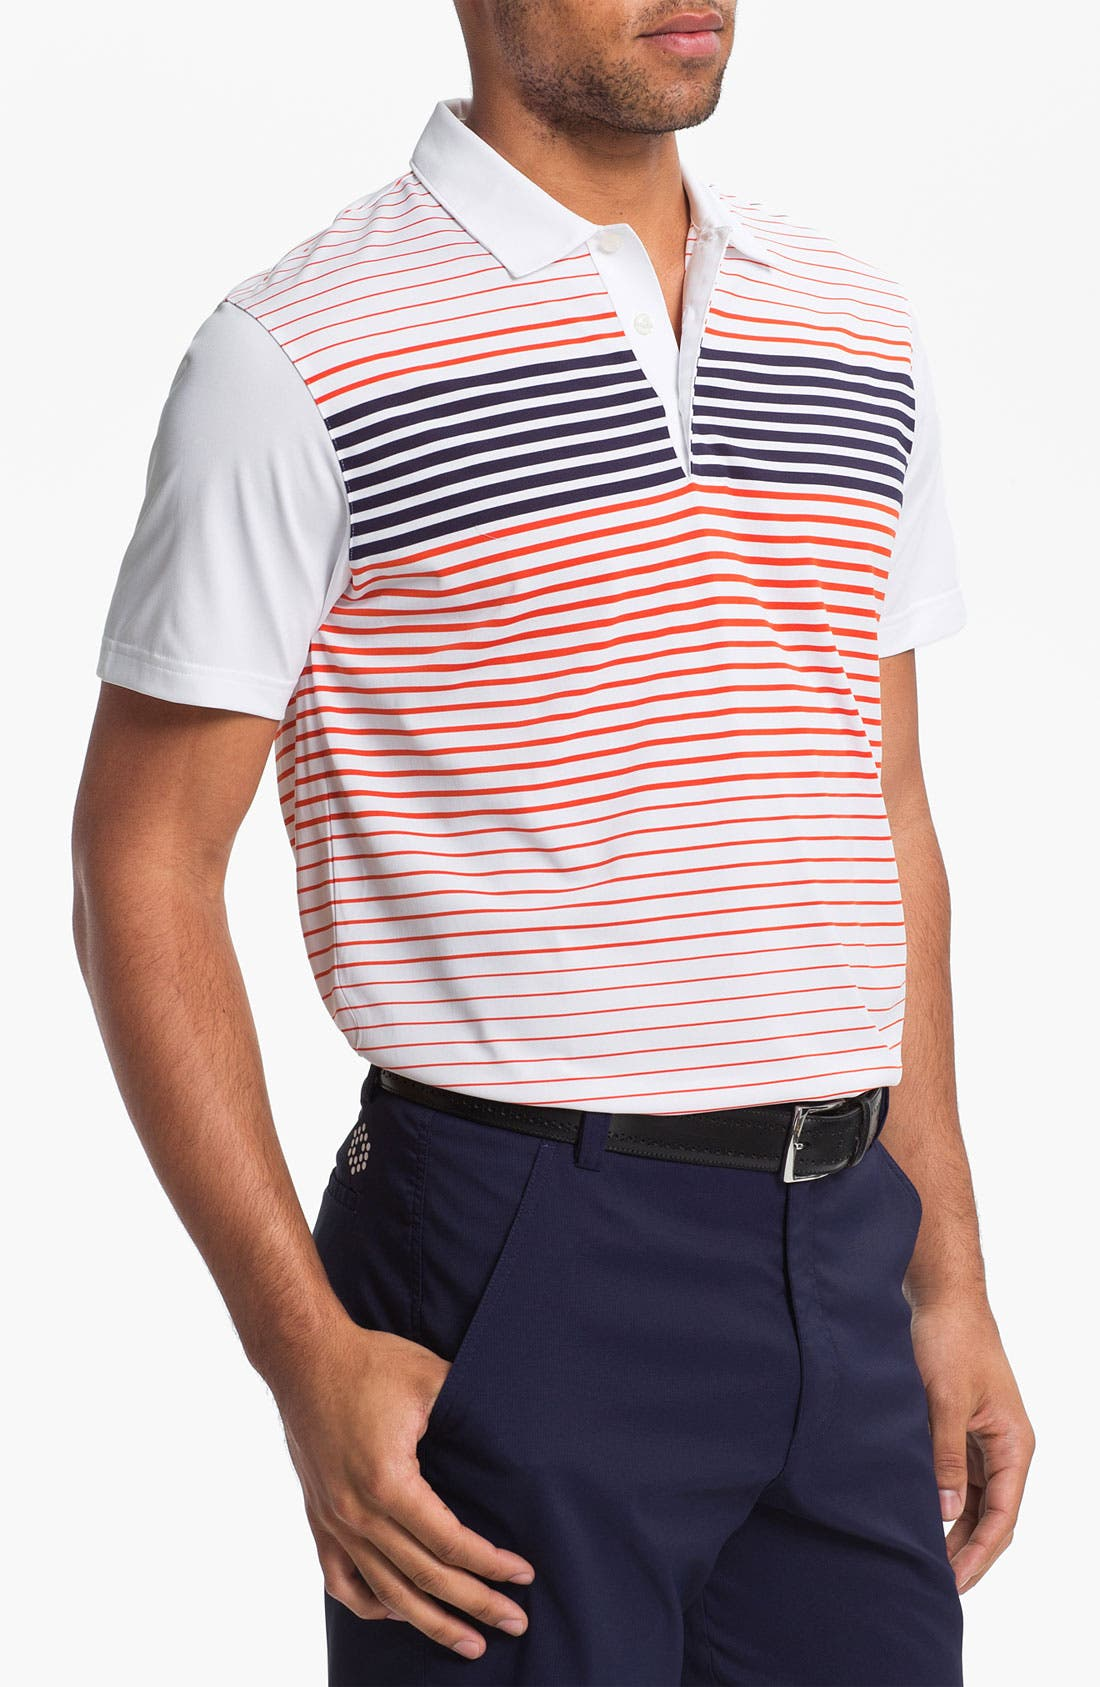 Alternate Image 1 Selected - PUMA GOLF 'Engineered Stripe' dryCELL™ Tech Polo